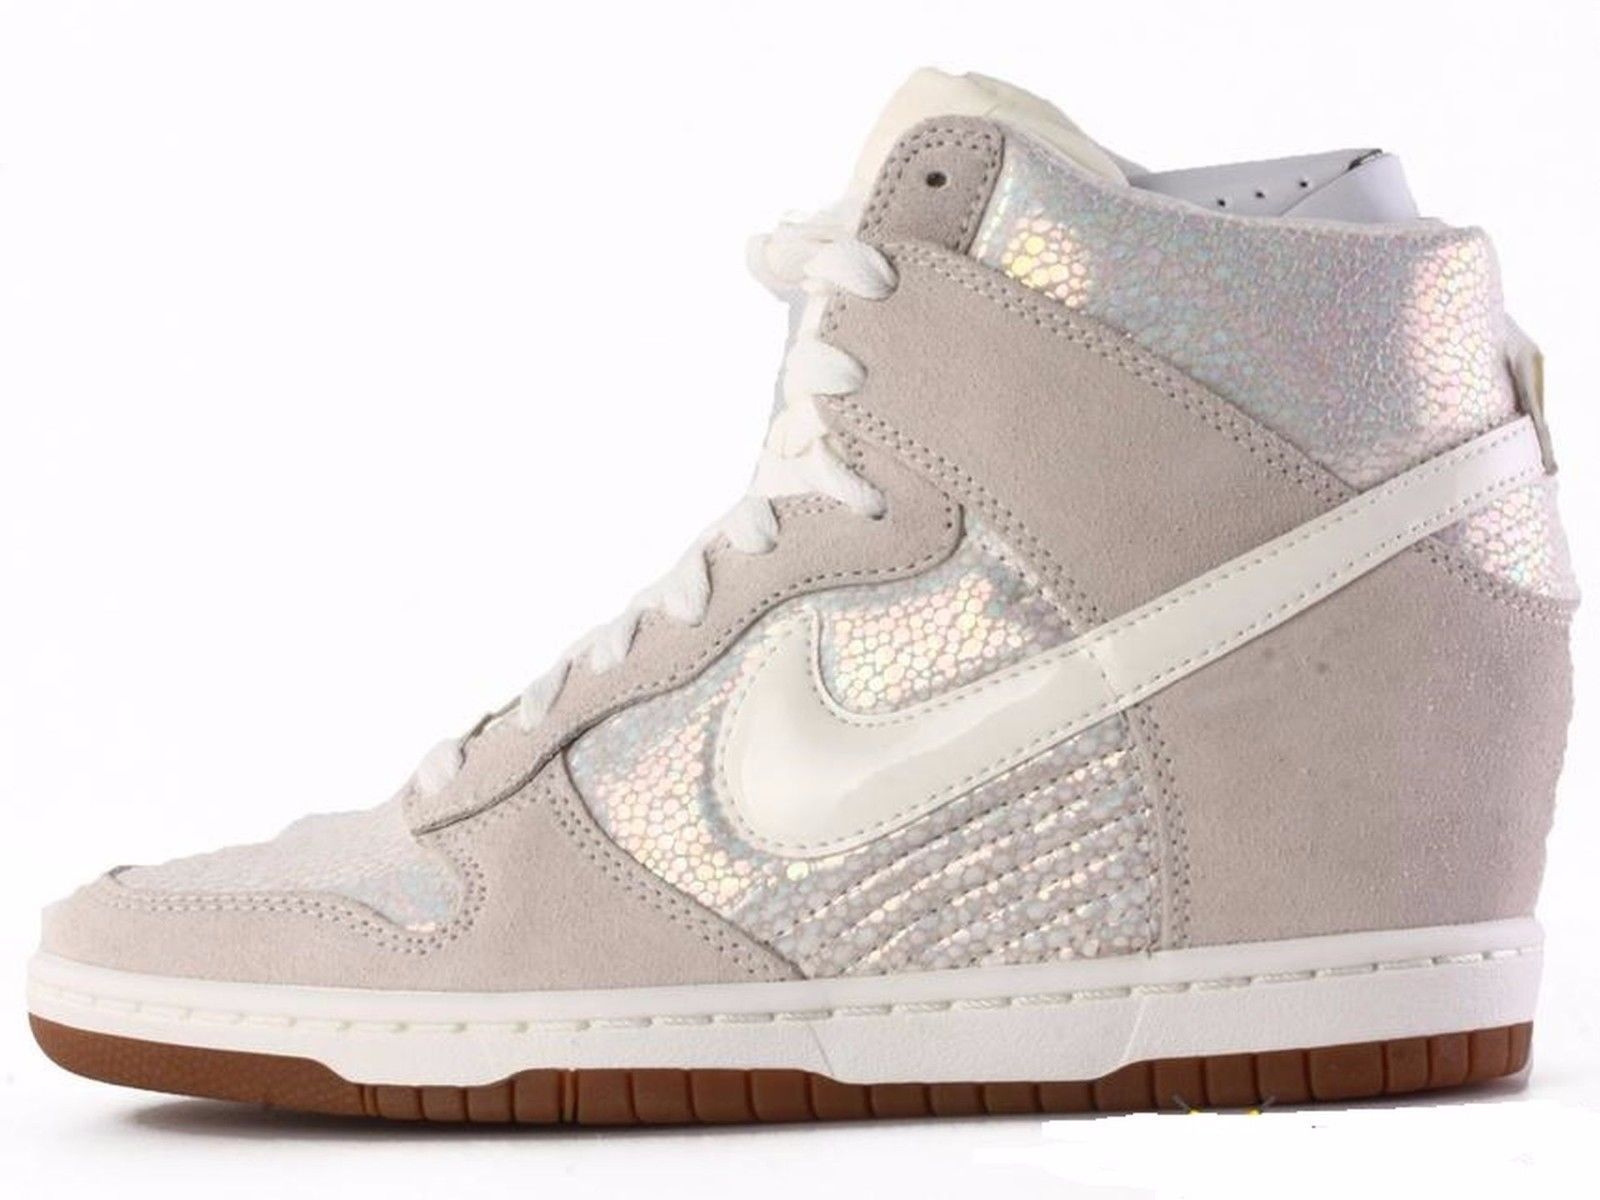 new styles 647c3 9fac5 Nike Dunk Sky Hi Premium Wmn Sz 7.5 585560-003 MTLC LUSTER SAIL-SL-GM MD  BRWN. Find this Pin and more on Women s Shoes ...